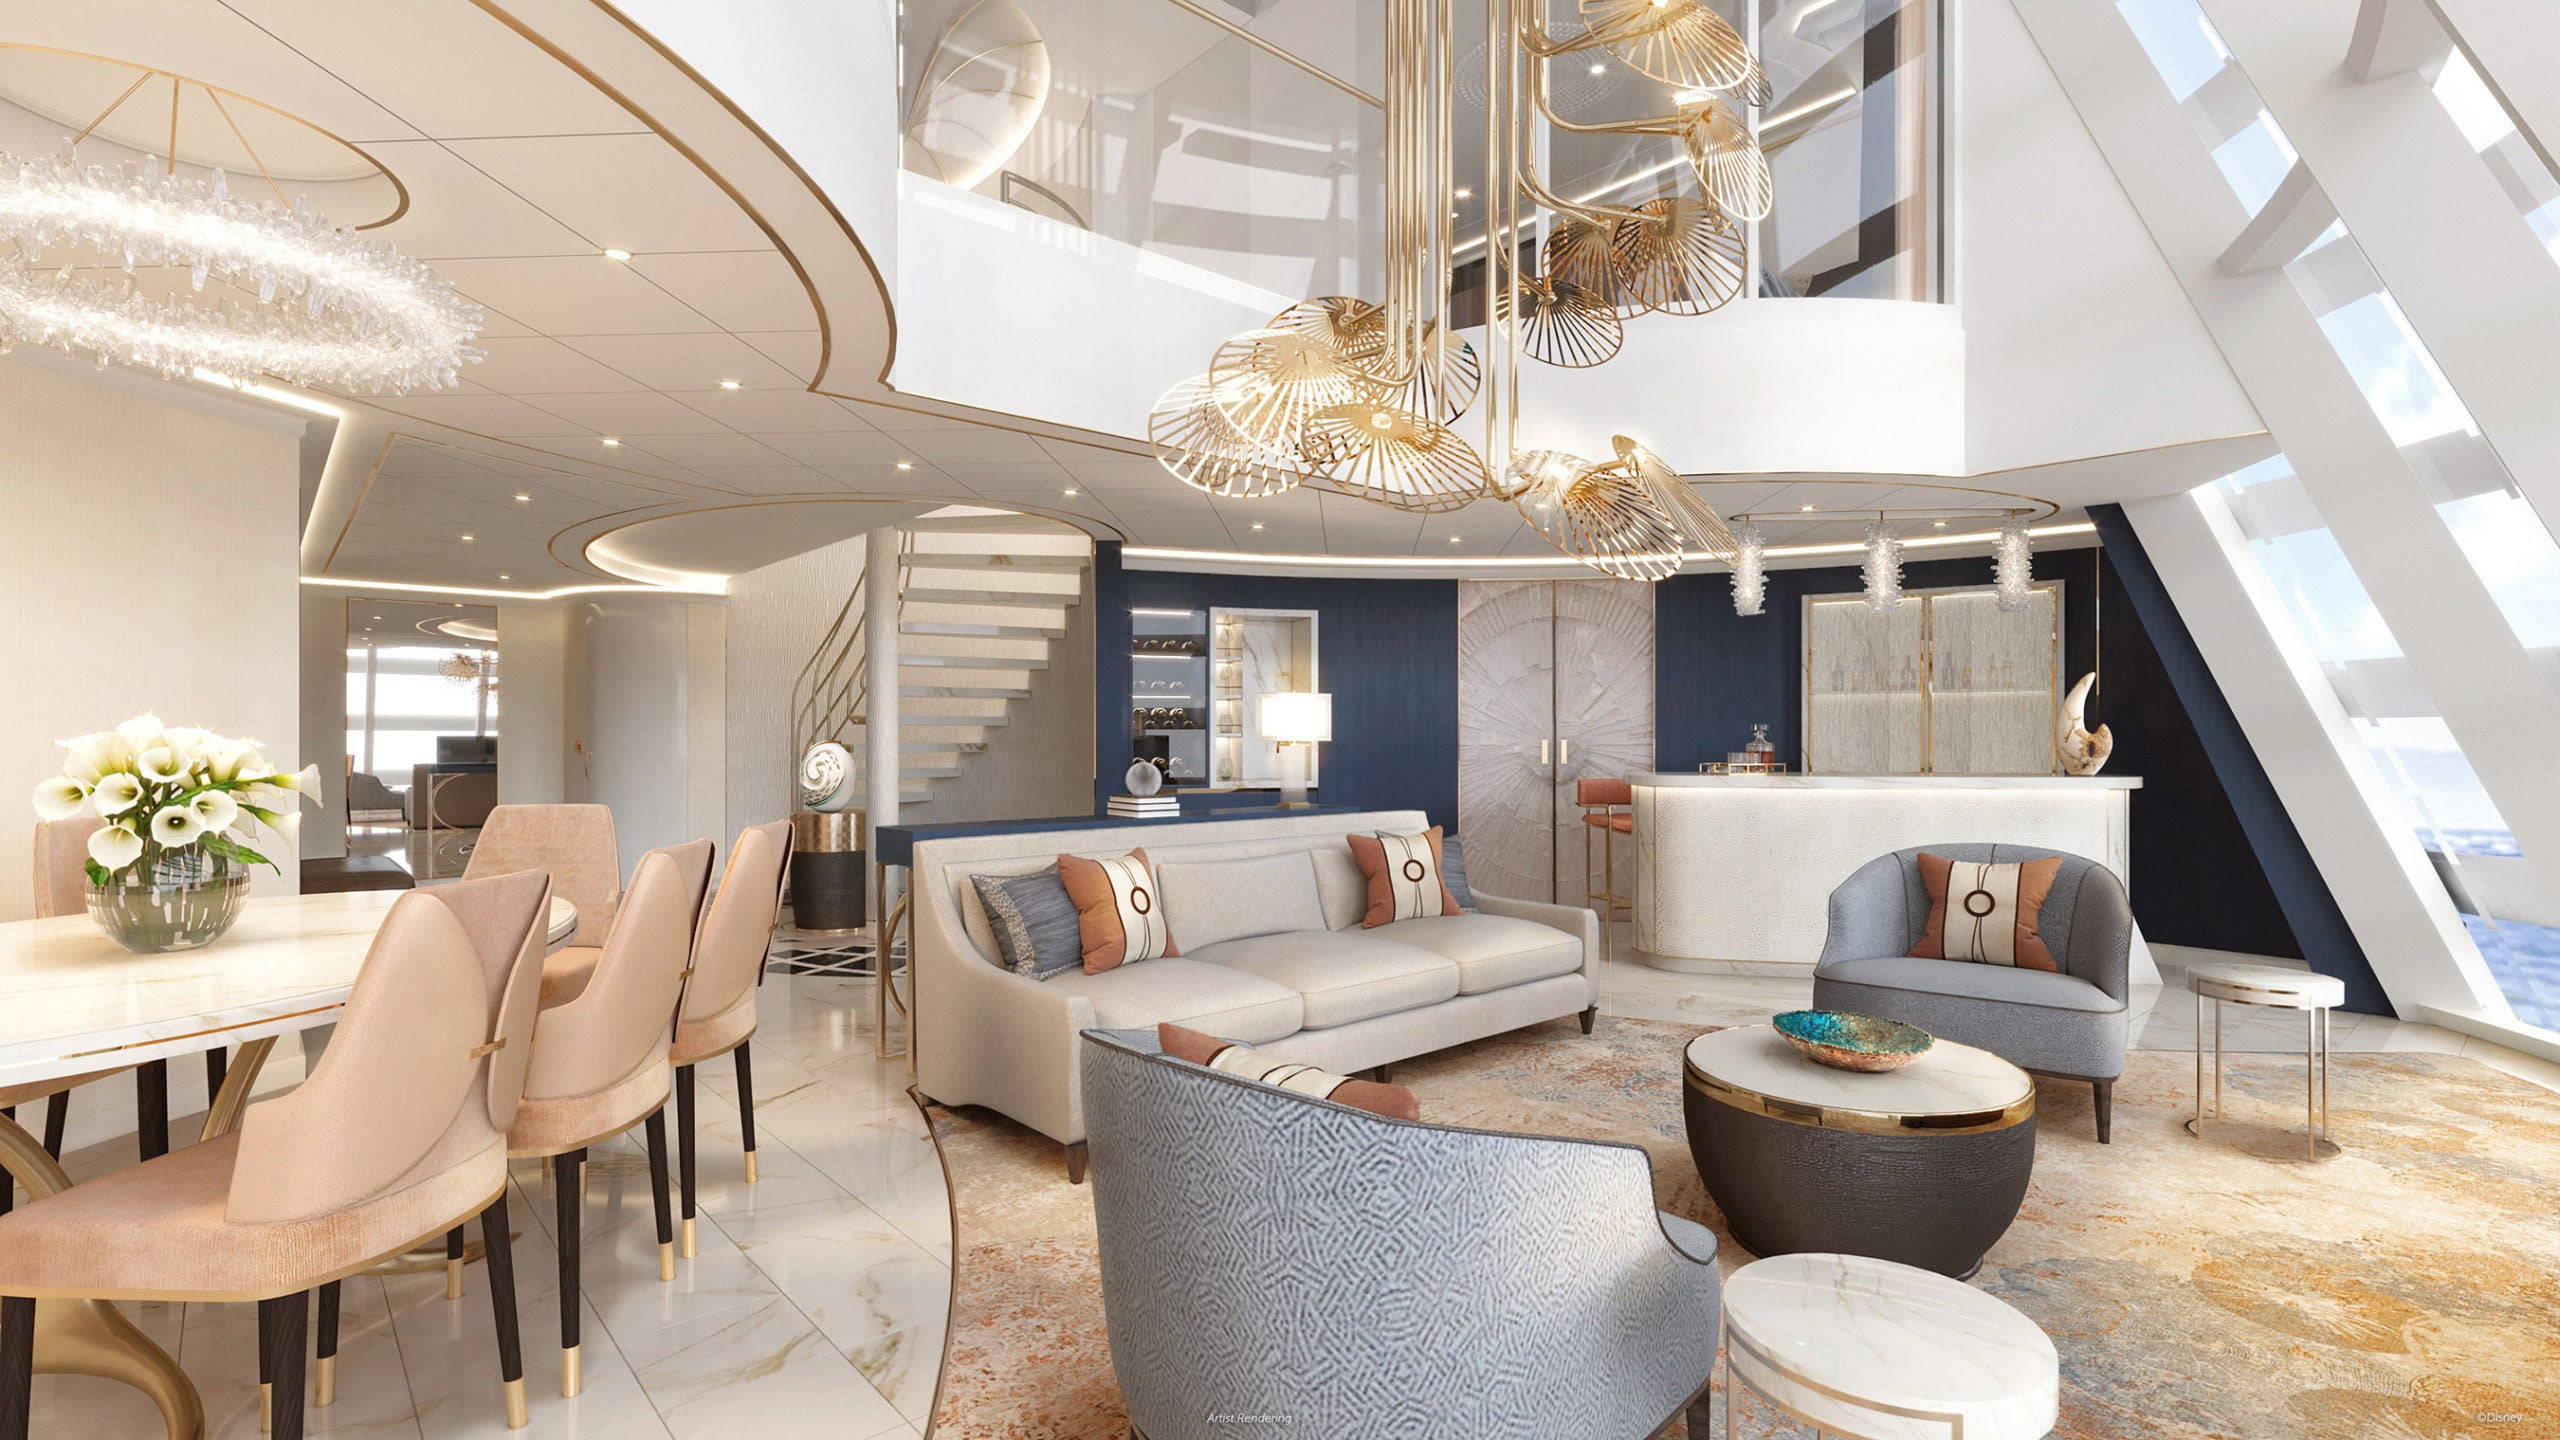 Disney just revealed an epic 2-story suite in the funnel of its newest ship - The Points Guy